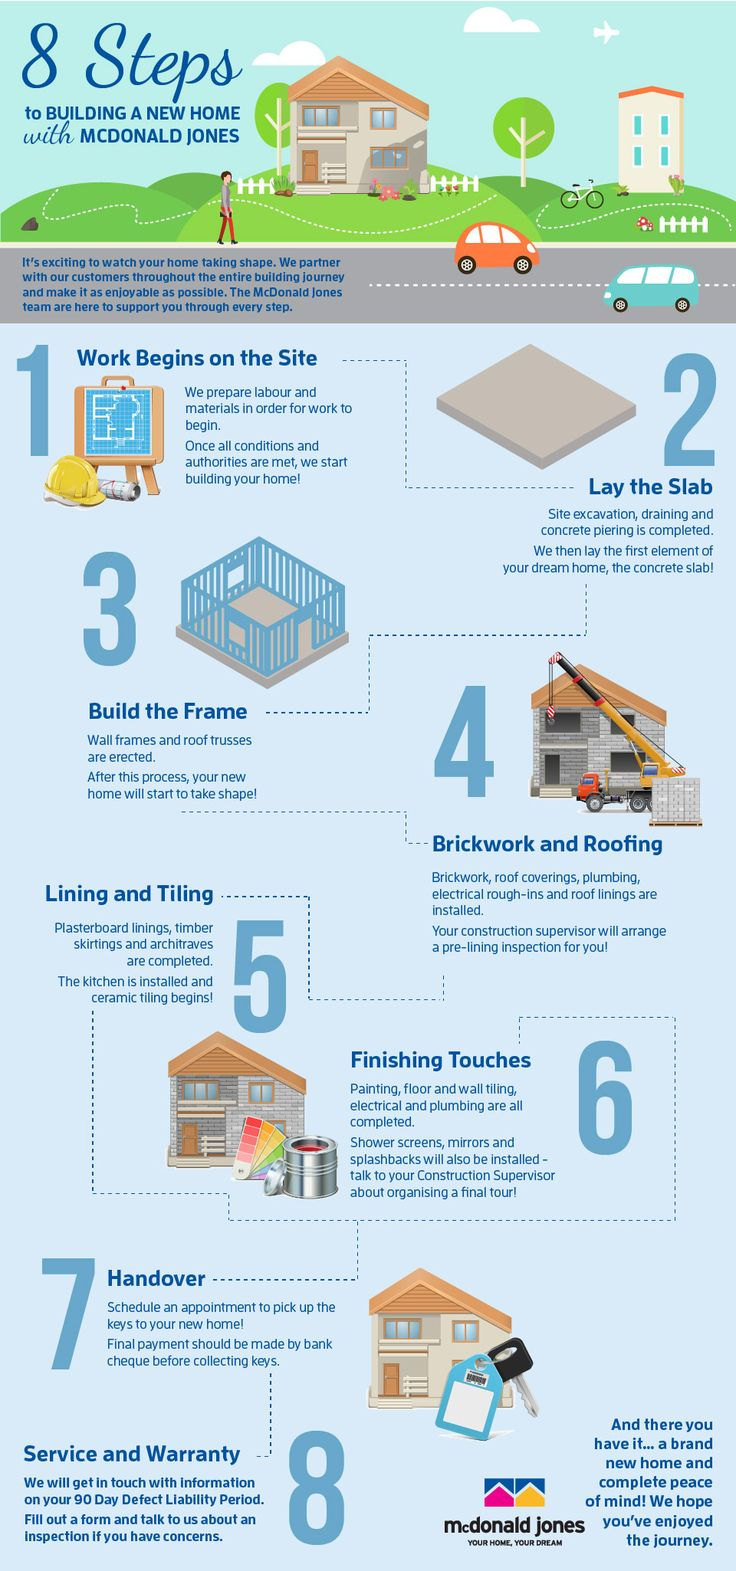 It's exciting to watch your home taking shape! Here is a quick walk-through the 8 steps in the building process. #mcdonaldjones #mcdonaldjoneshomes #buildingguide